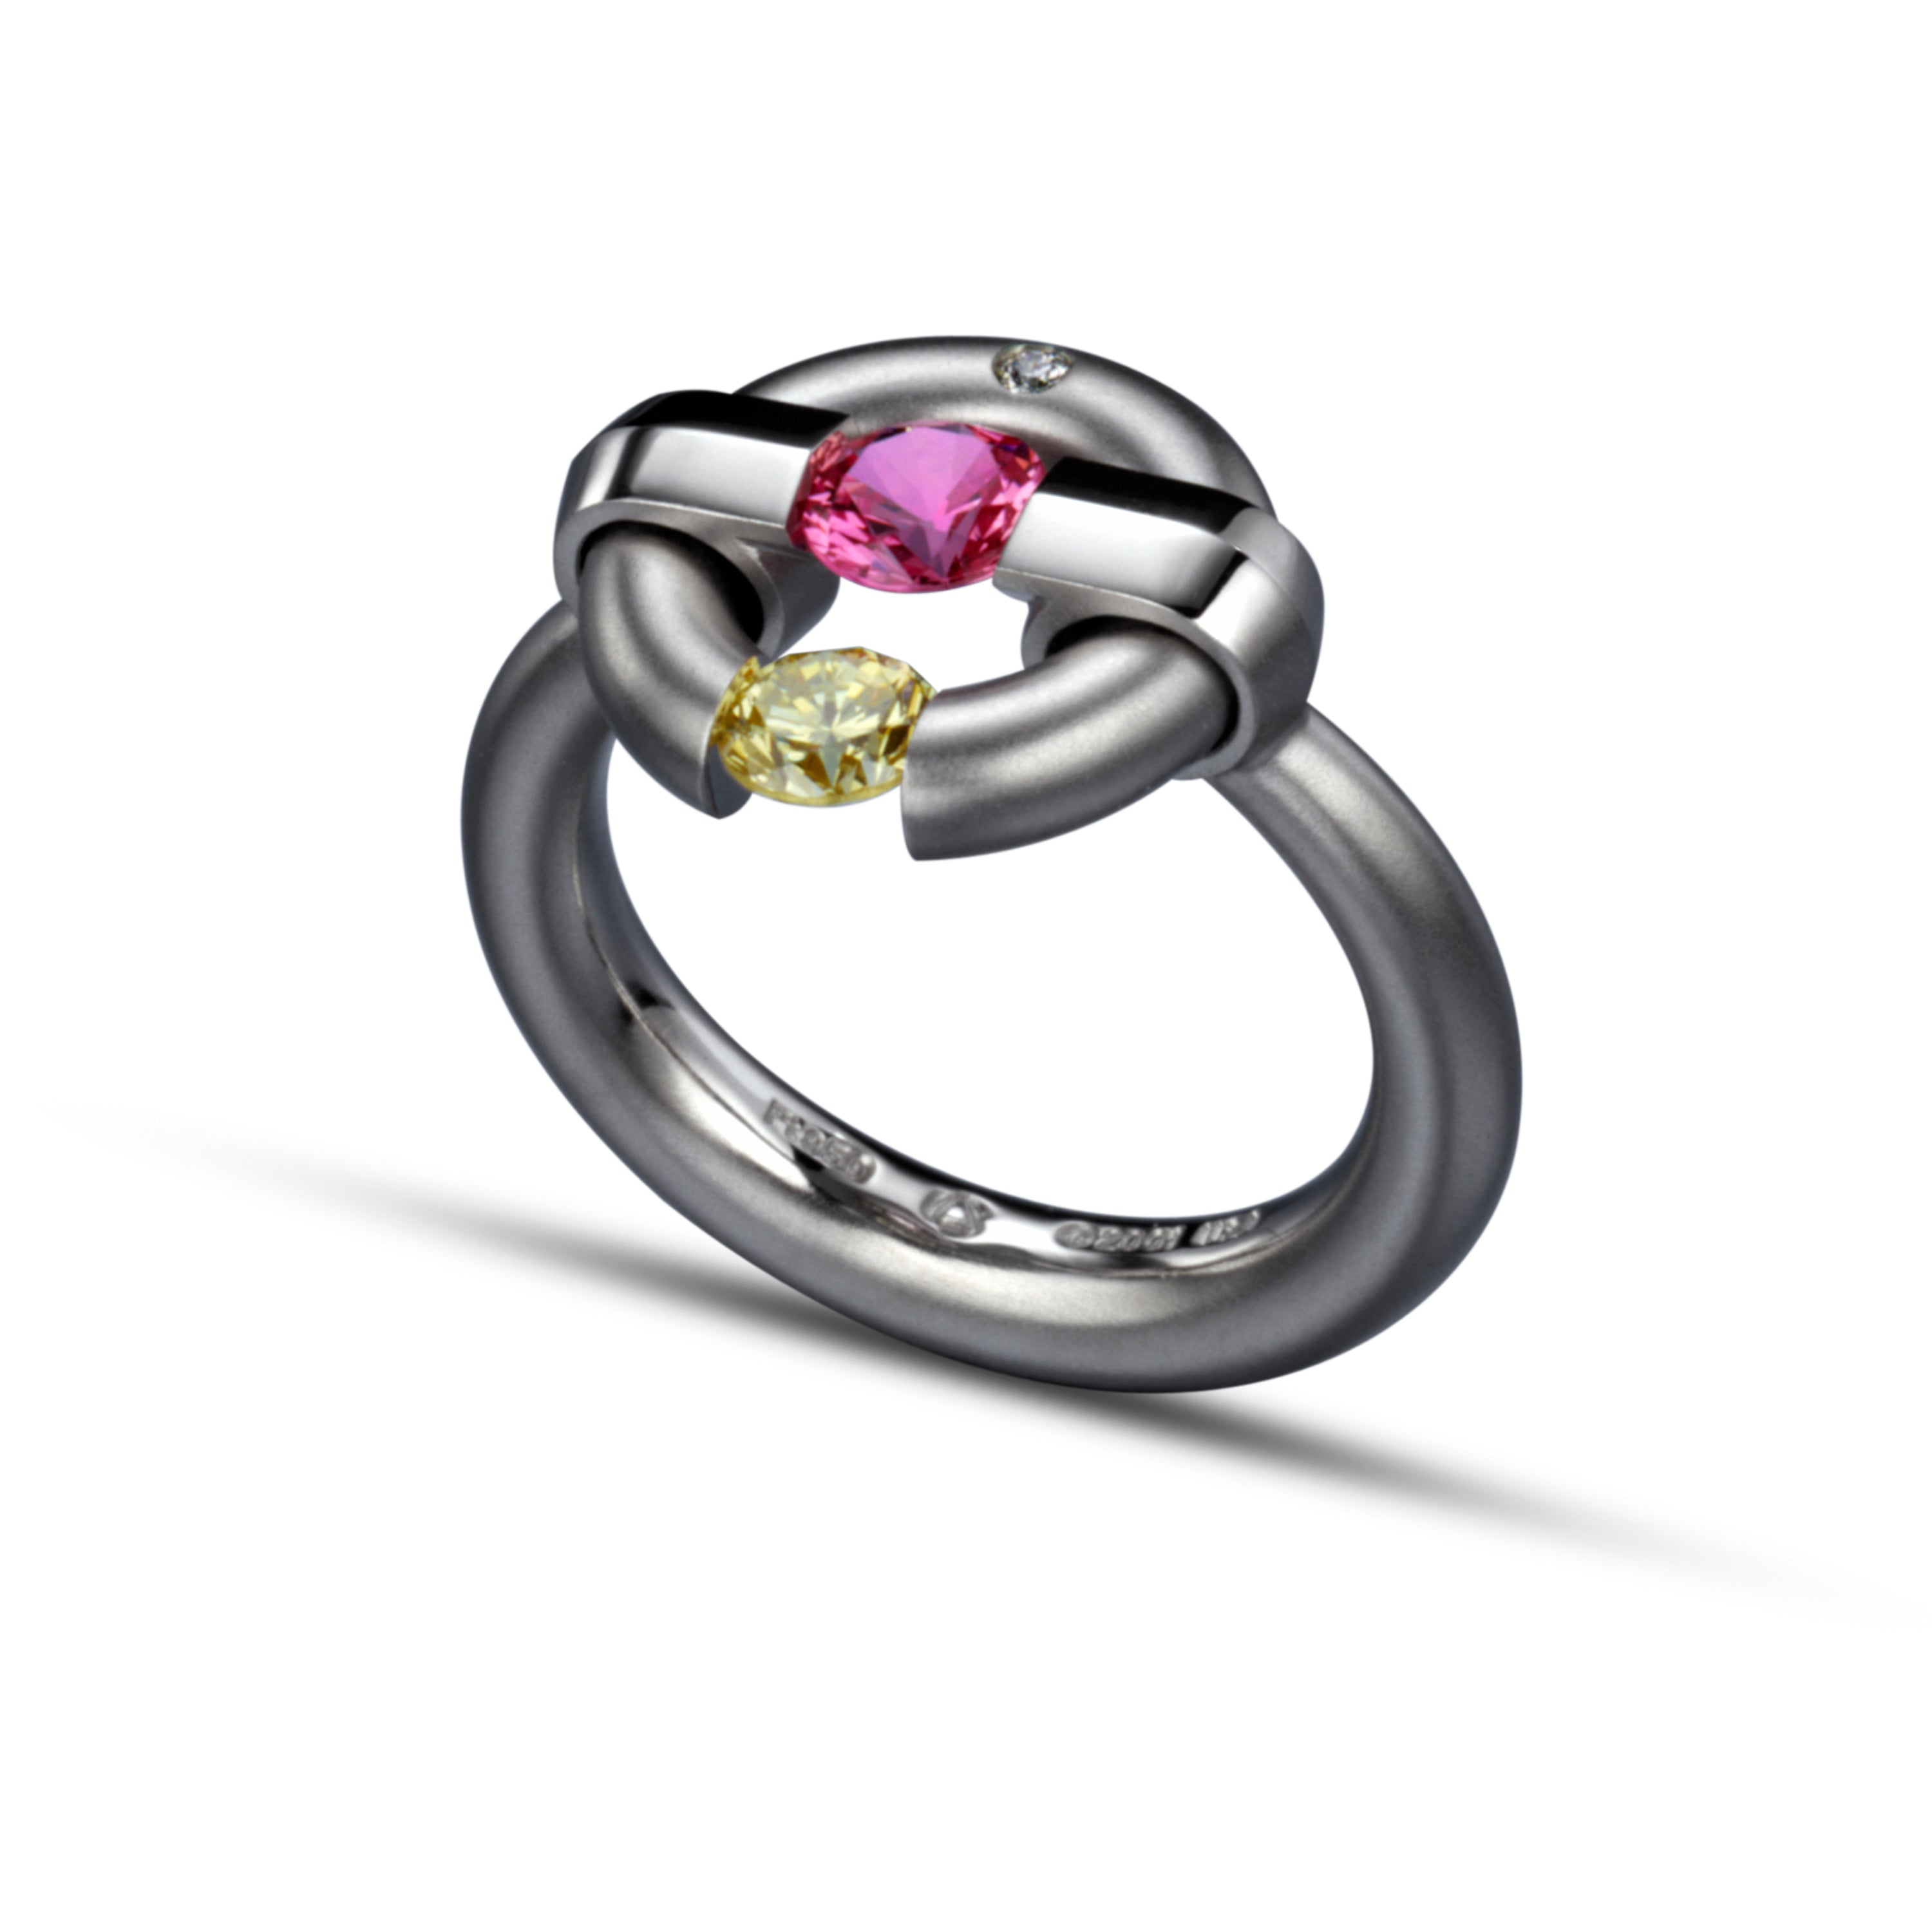 fairtrade mtc engagement plat pinksapphire ring lankan sapphire diamond gold valeriojewelry and white iso infinity sri gems cluster ethical pink